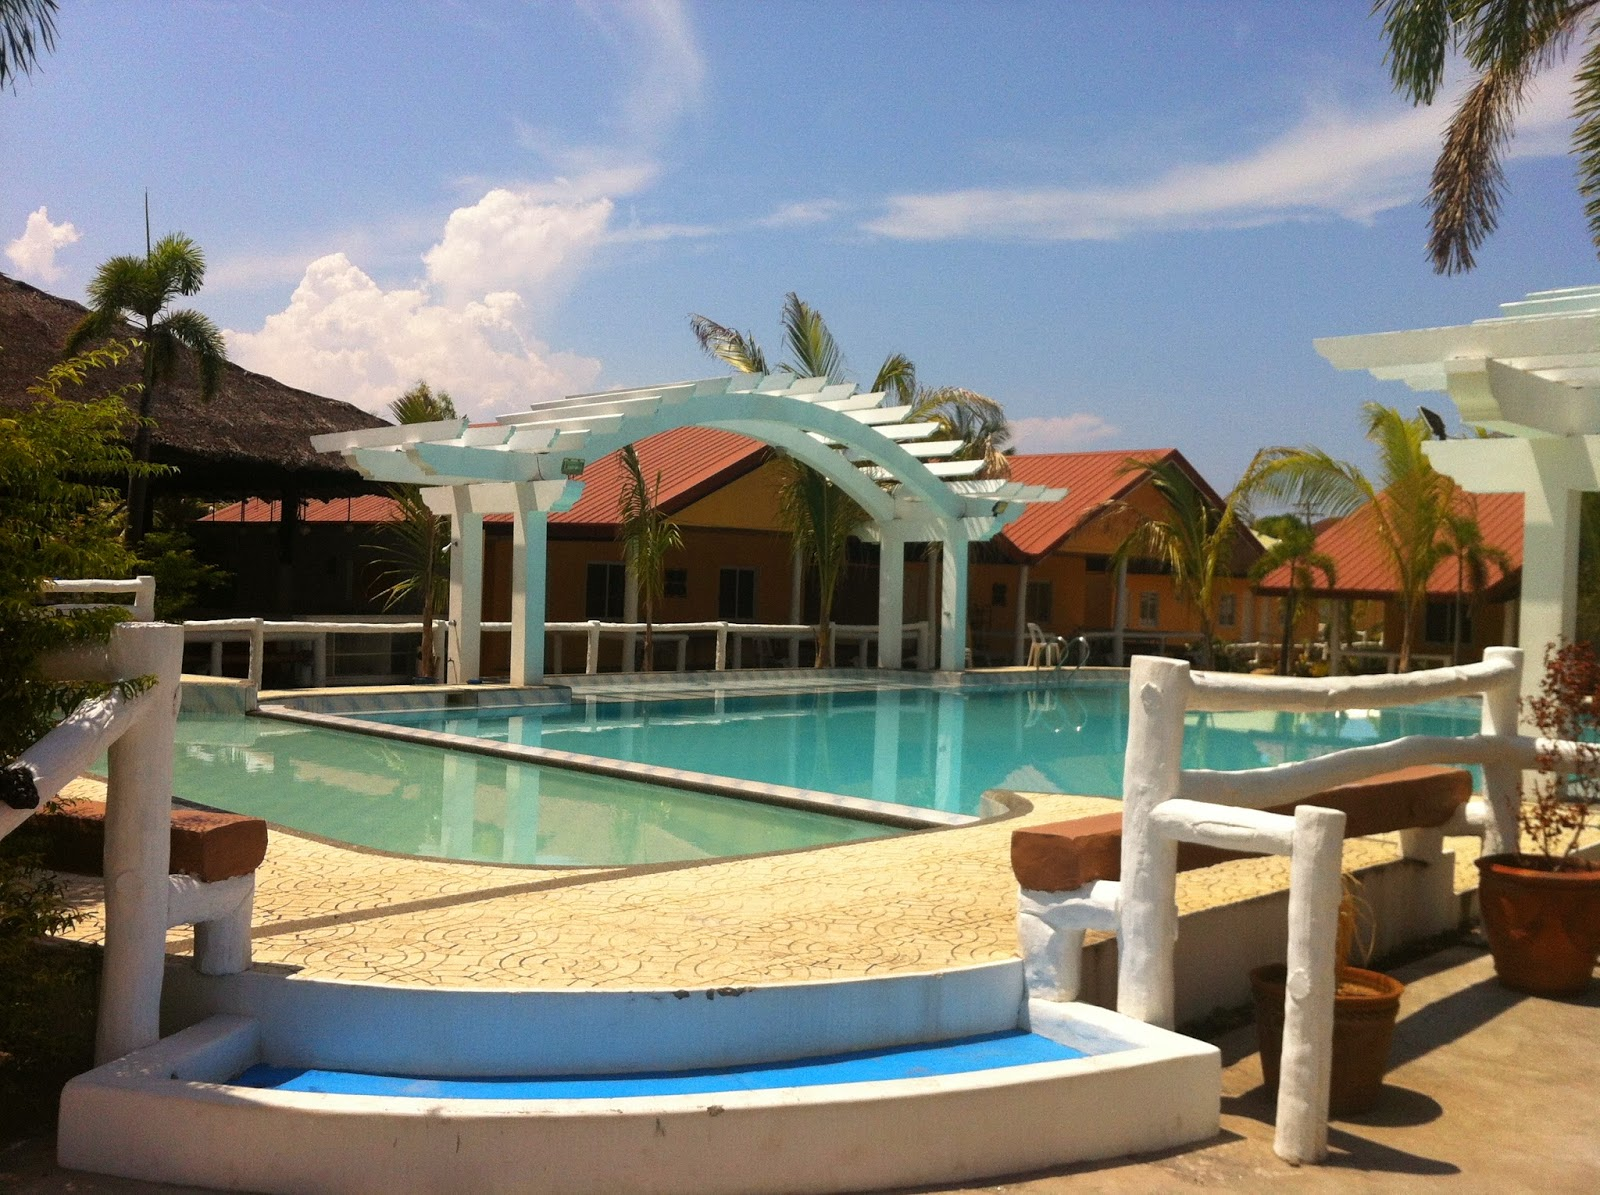 Yobichok phi phi beach resort morong bataan for Beach resort in morong bataan with swimming pool